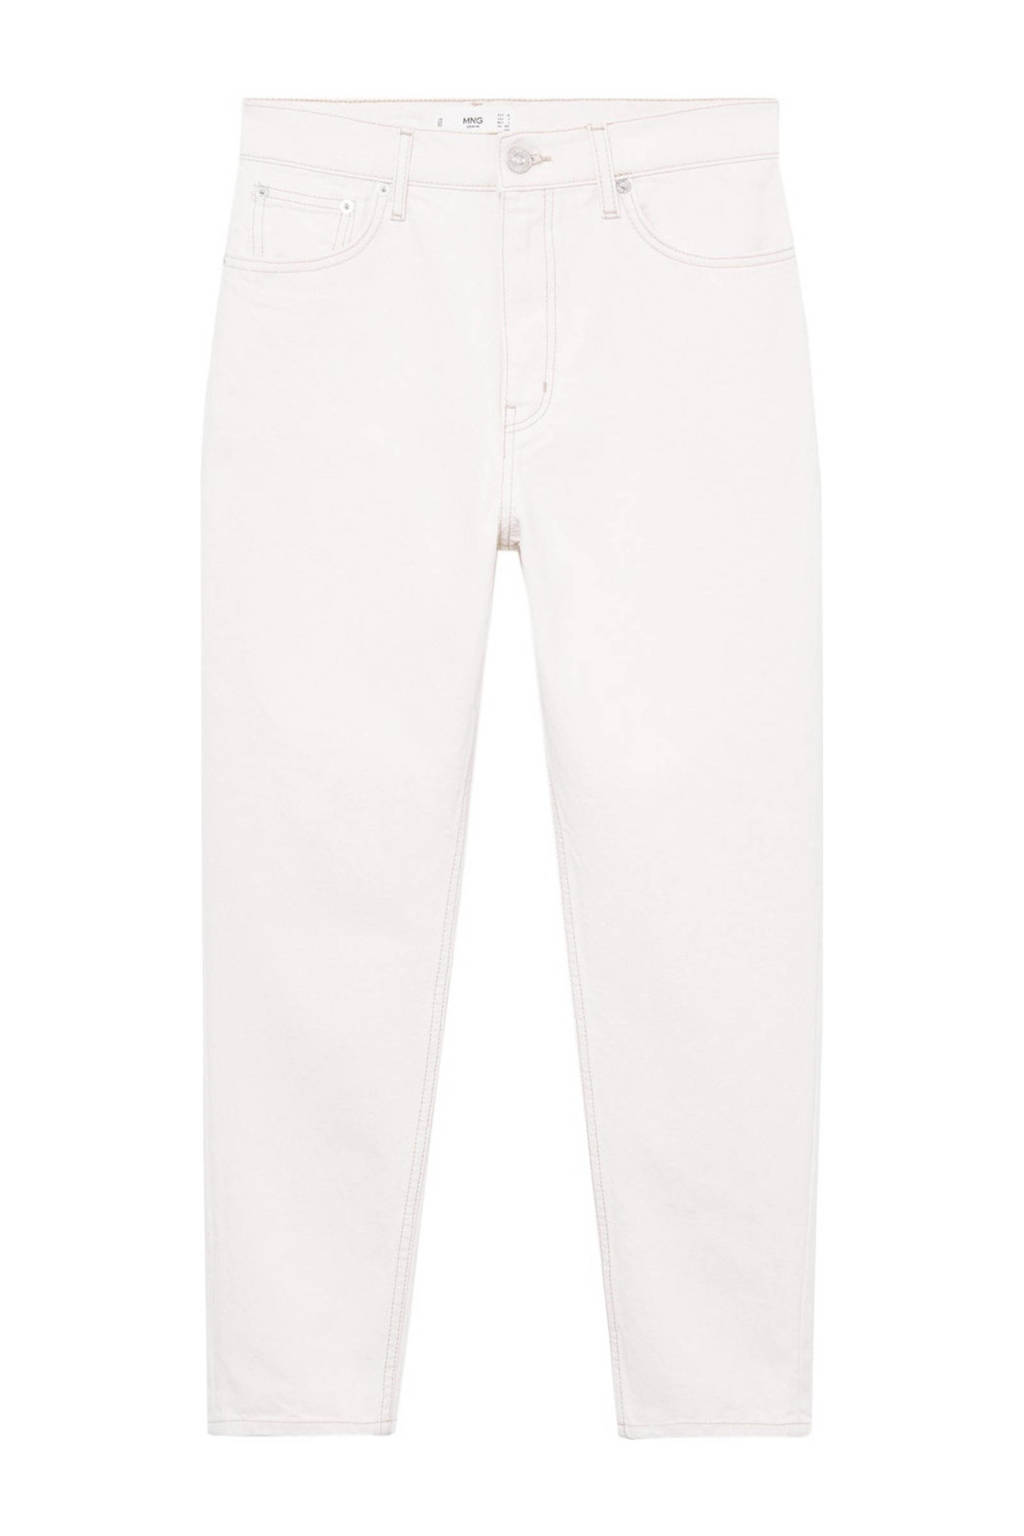 Mango high waist mom jeans ecru, Ecru